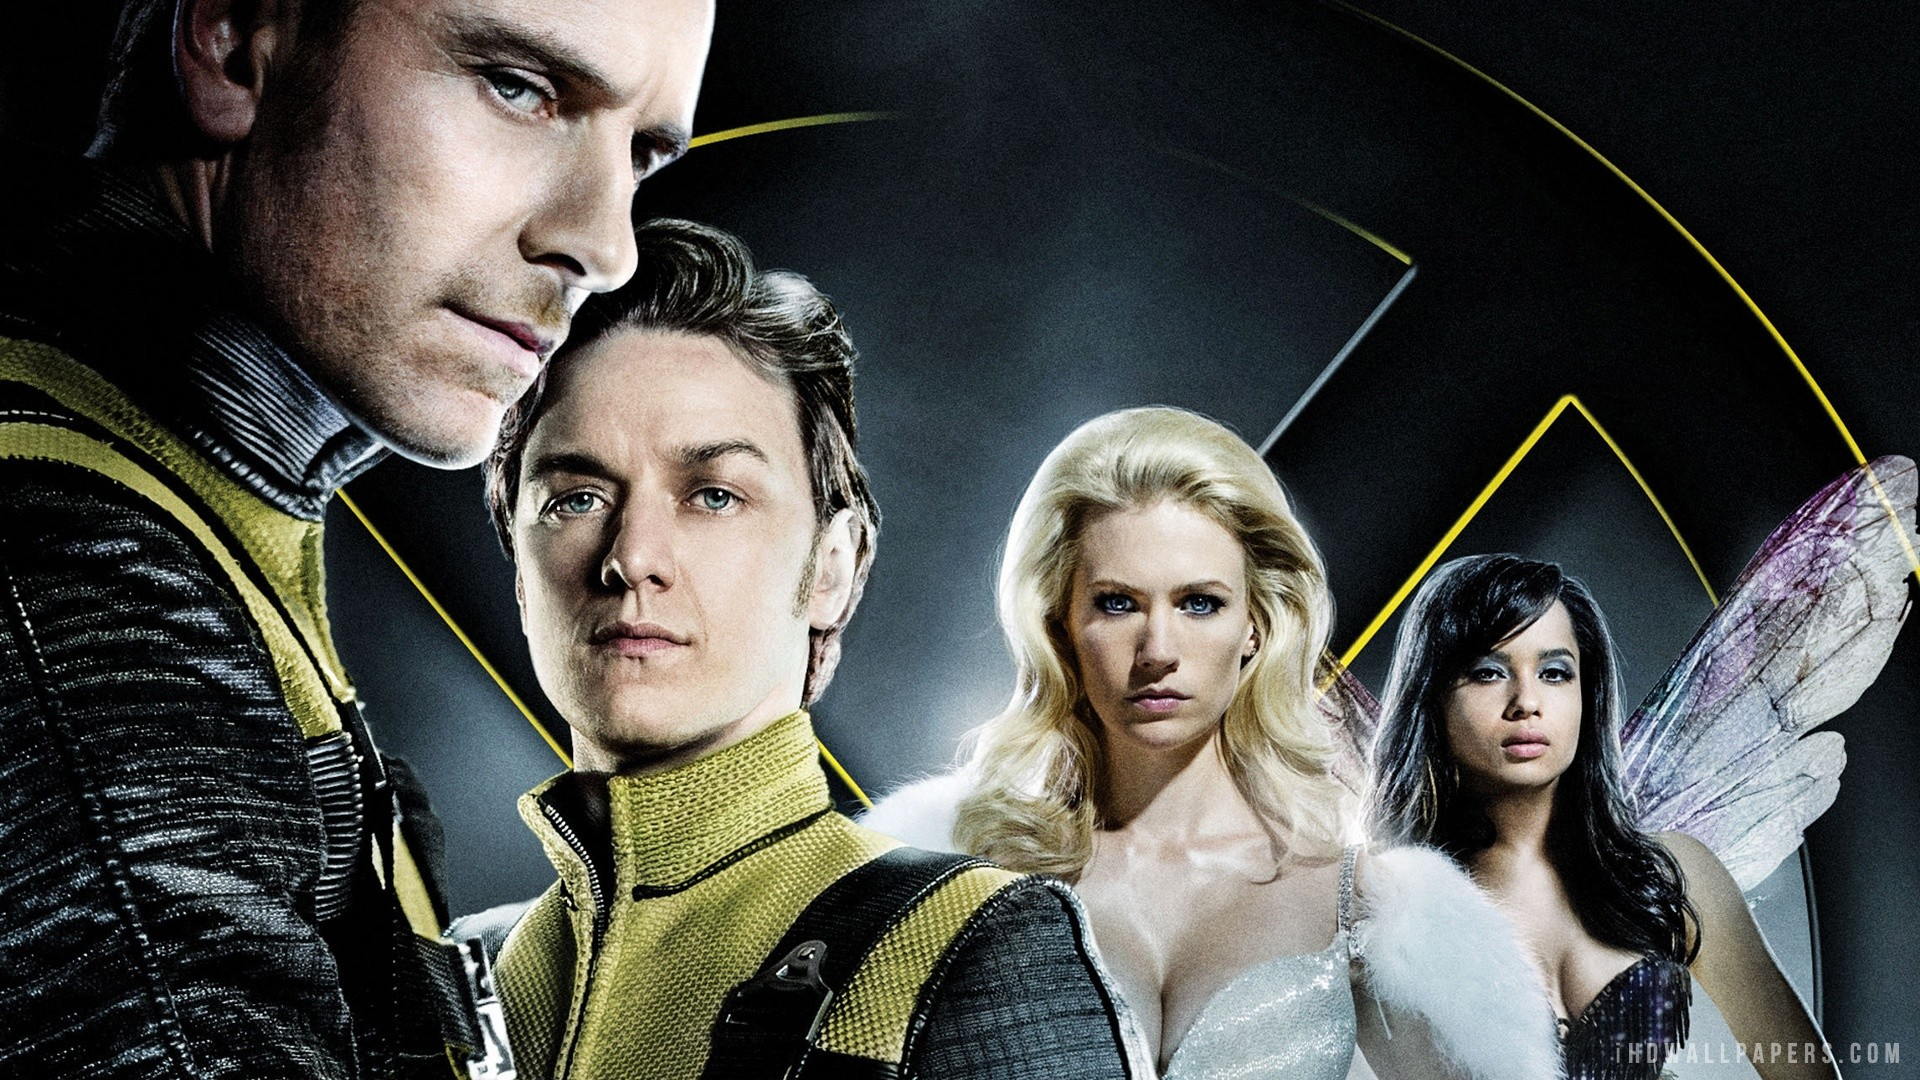 1920x1080 x men first class wallpaper android with wallpaper hd resolution on movies  category similar with days